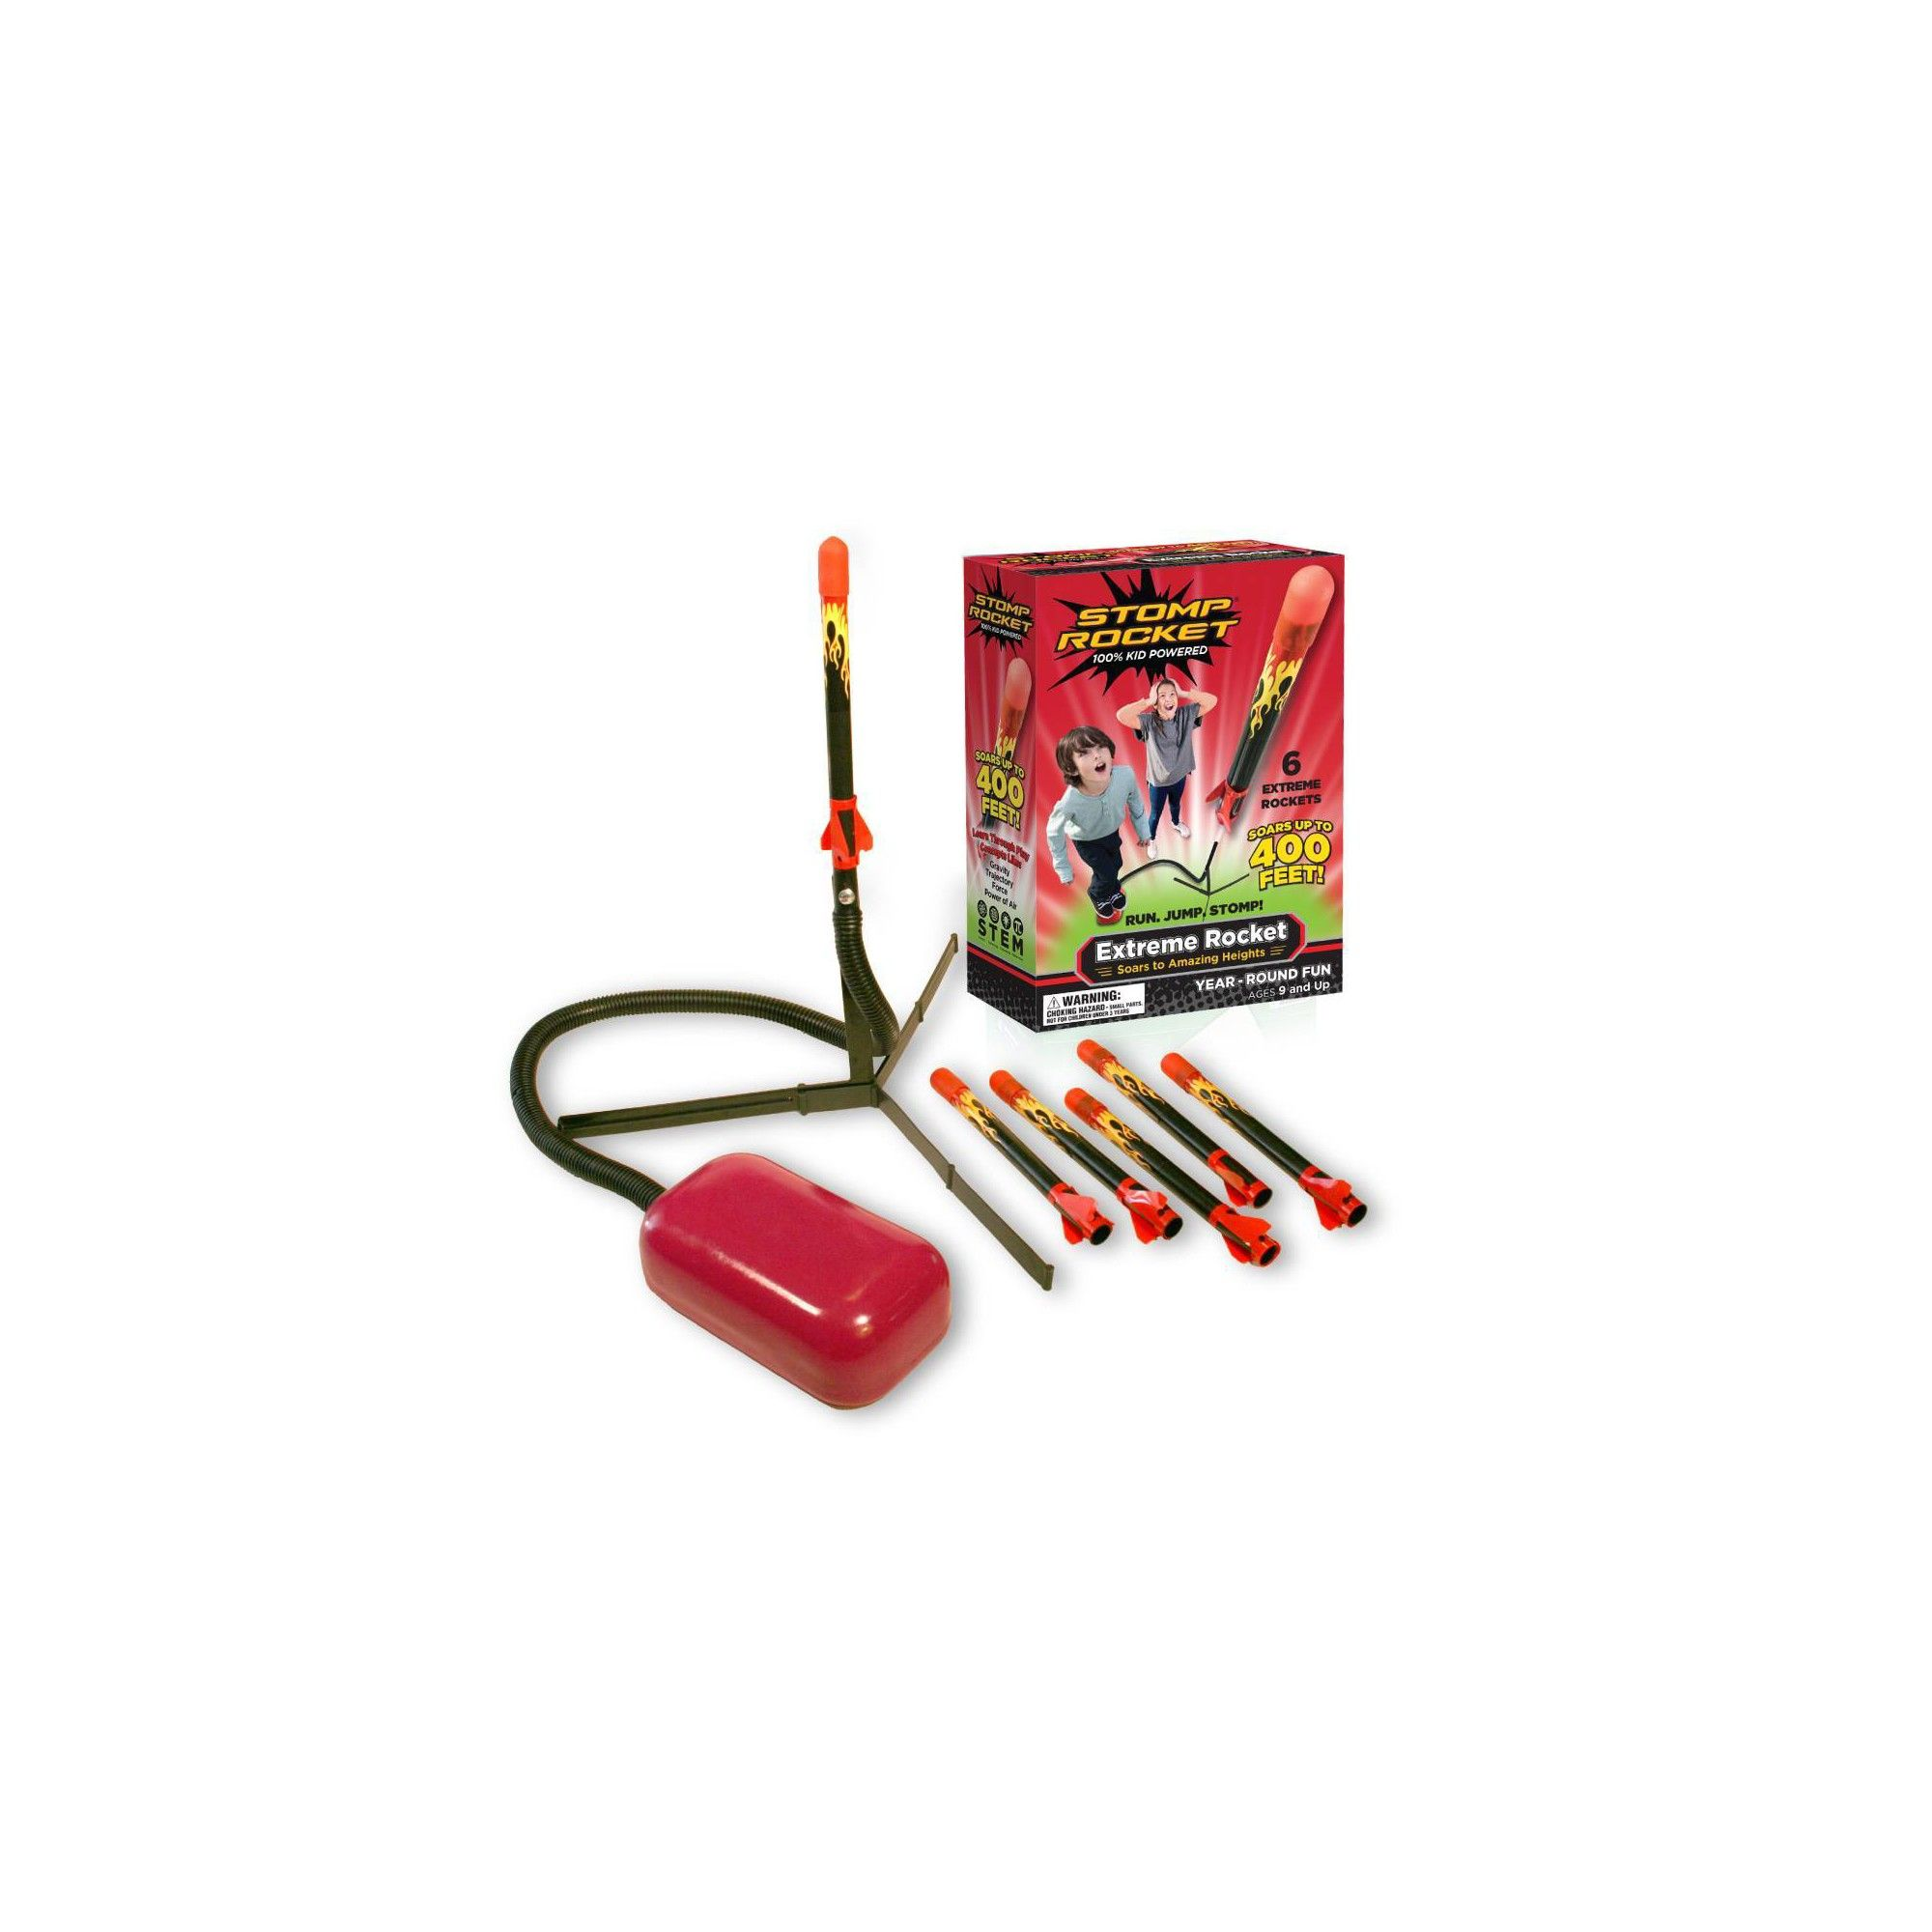 Stomp Rocket Extreme Super High Flying Rockets with Launch